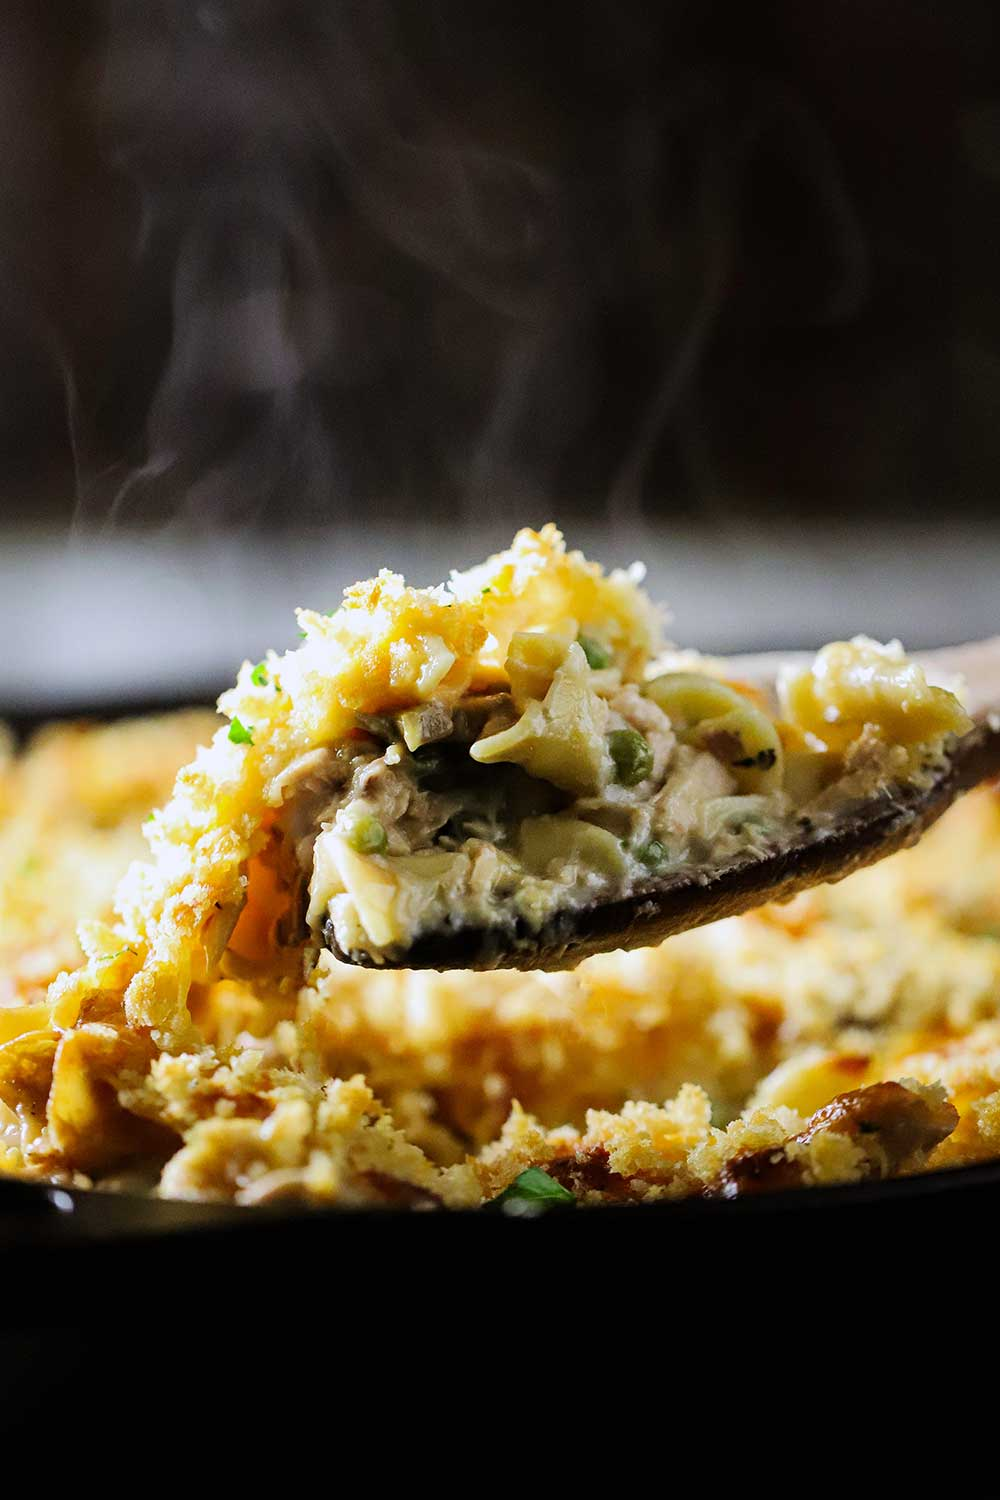 A large wooden spoon lifting a helping of cooked tuna casserole out of a black cast-iron skillet.